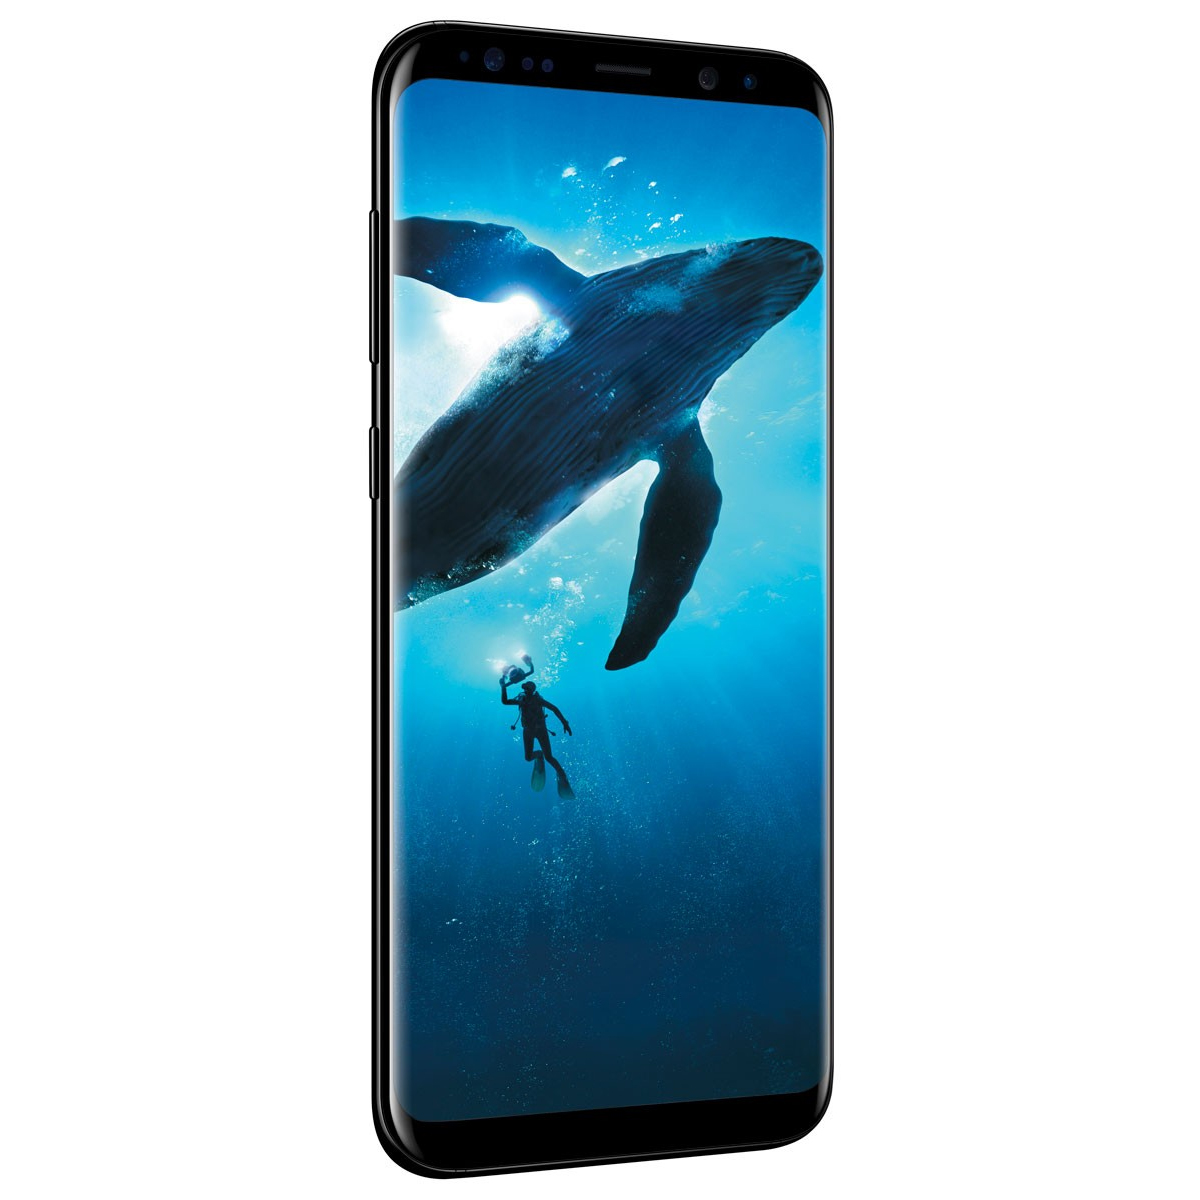 "New Galaxy S8+ Plus 64GB G955UZKV Verizon 4G LTE 6.2"" Super AMOLED 4GB RAM 12MP Camera by Samsung Smartphone - Midnight Black"